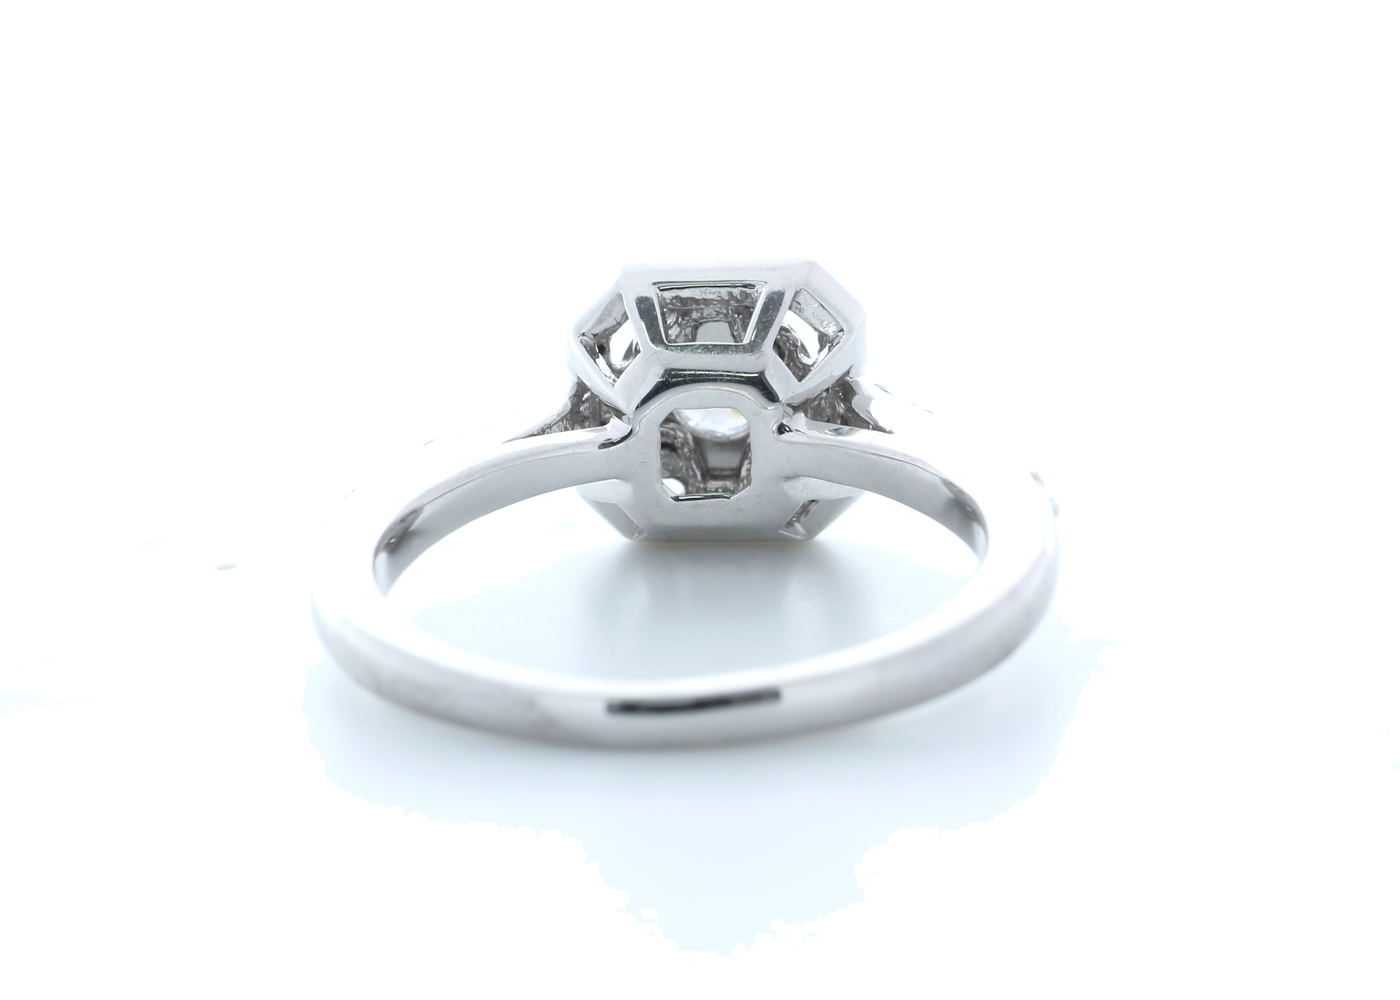 18ct White Gold Diamond Halo Setting Ring 0.55 Carats - Image 3 of 5